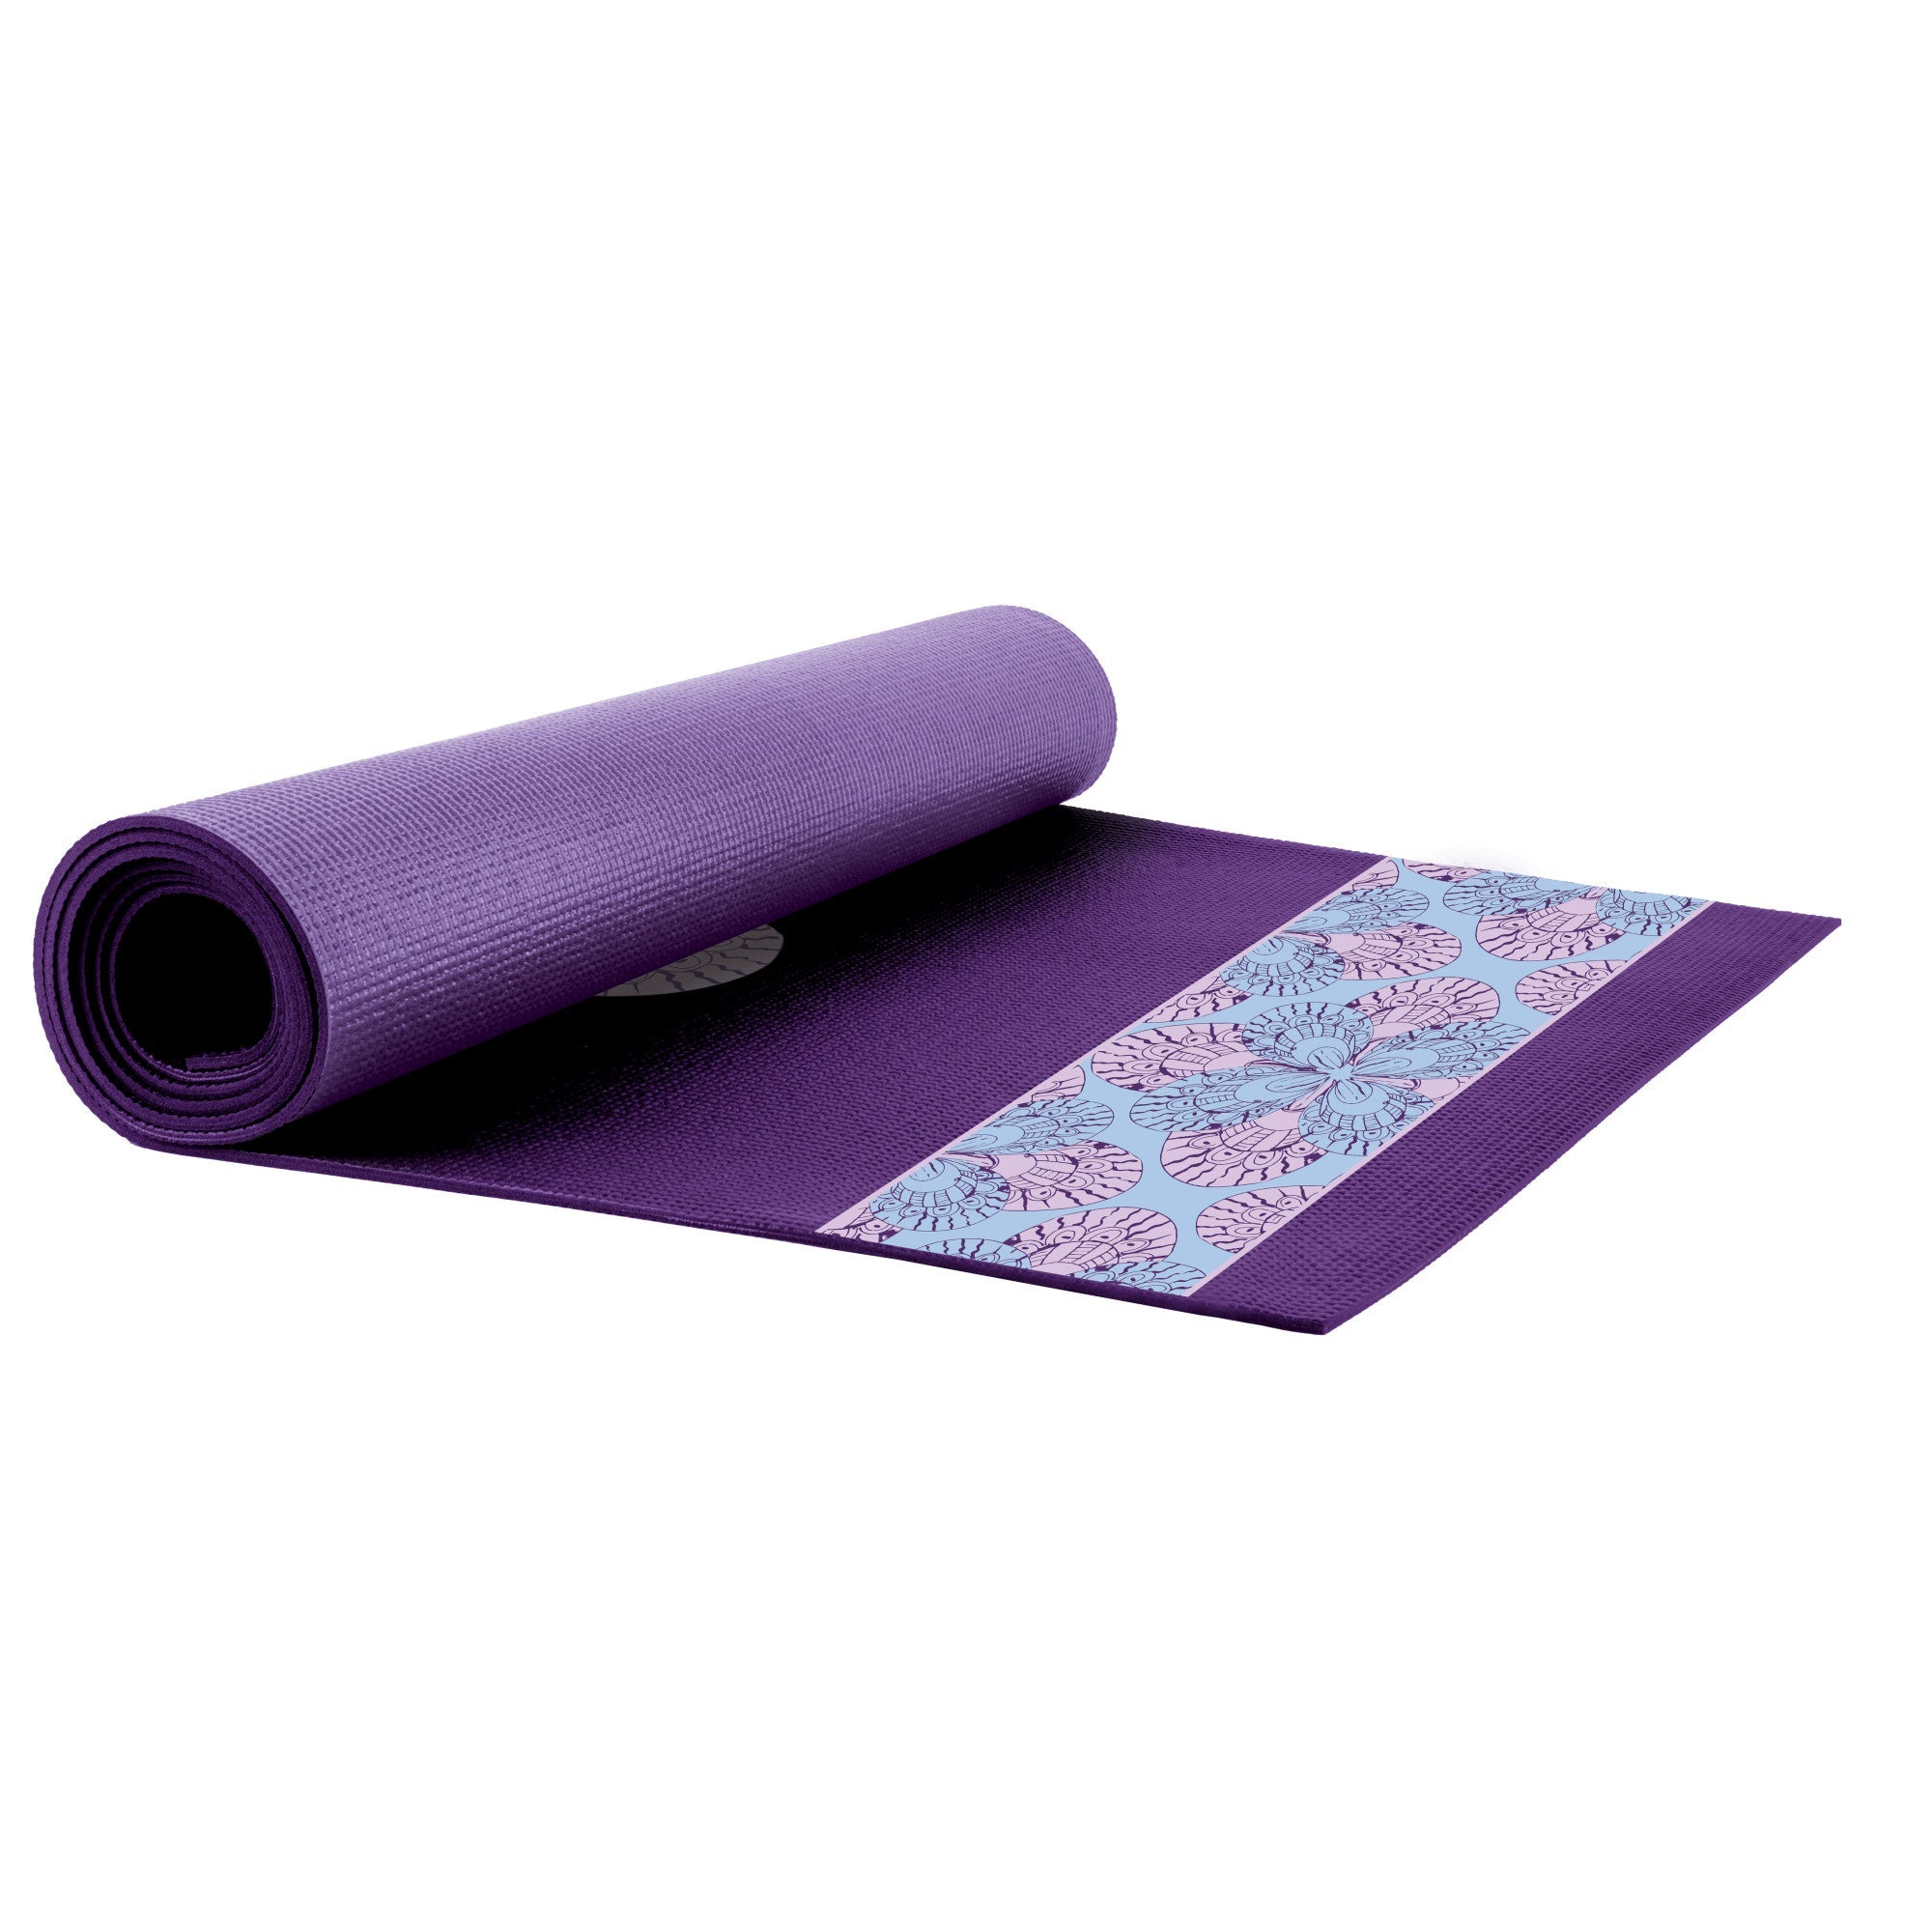 Everlast Purple Print Yoga Mat by Everlast Canada